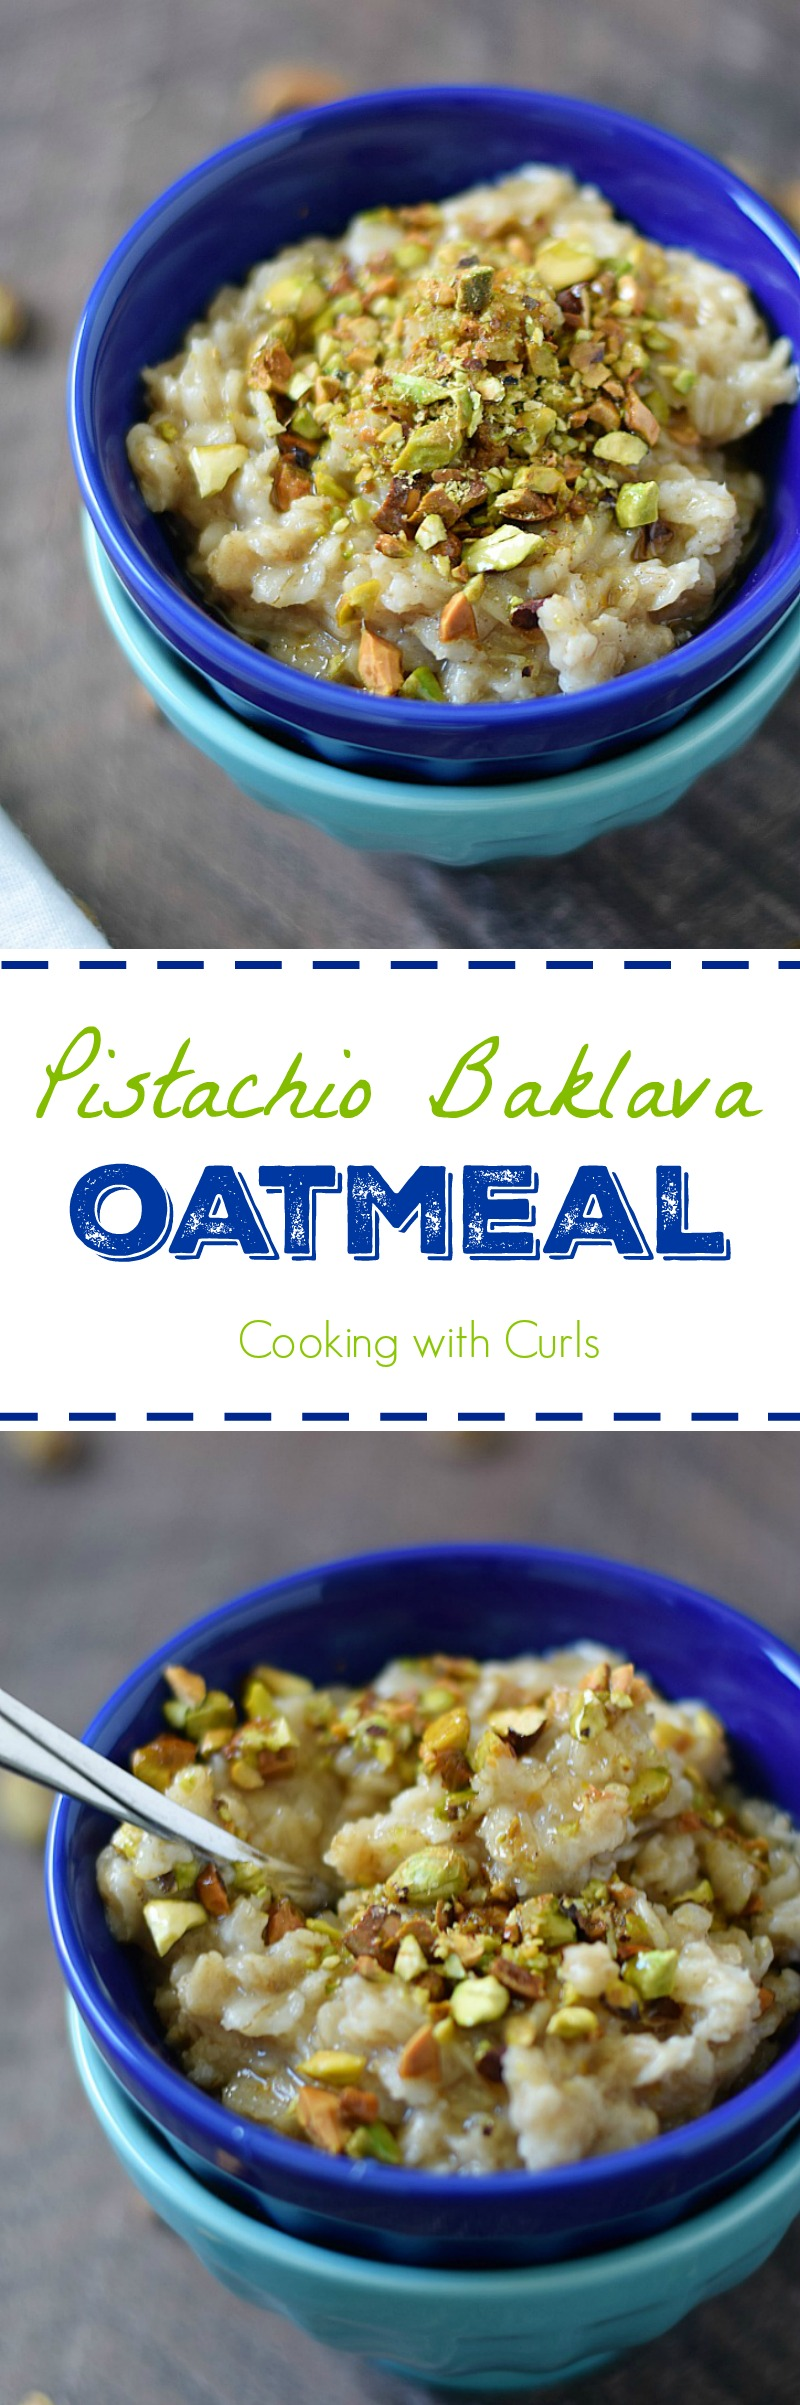 The flavors of pistachios, honey, cinnamon, and orange make this Pistachio Baklava Oatmeal and irresistible breakfast treat | cookingwithcurls.com